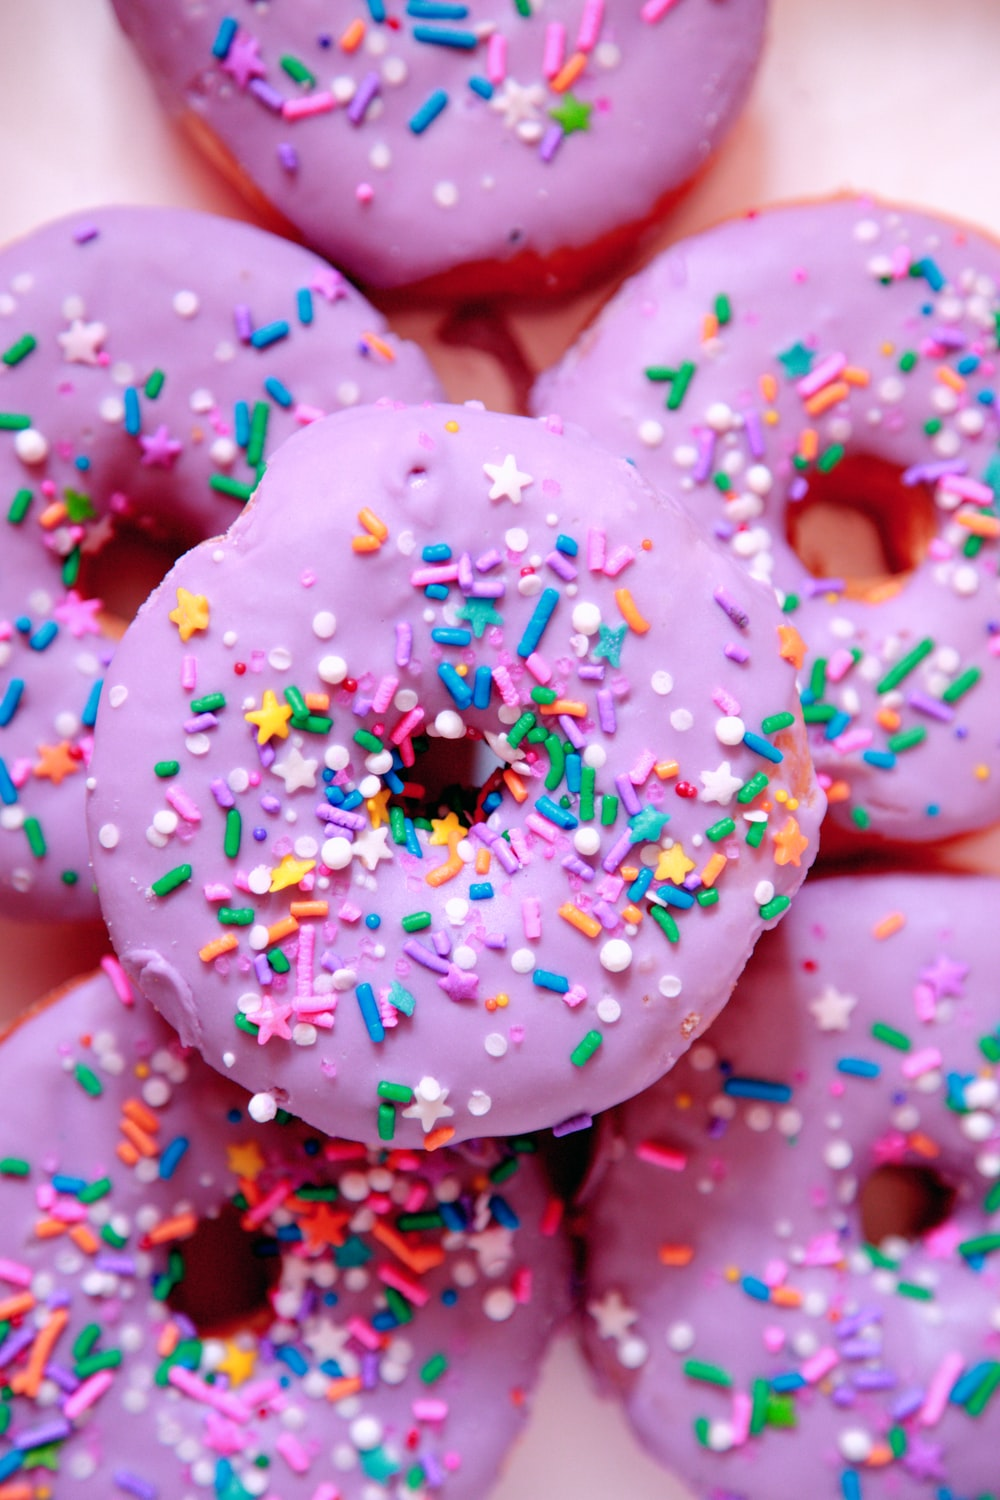 pink and white doughnut with sprinkles